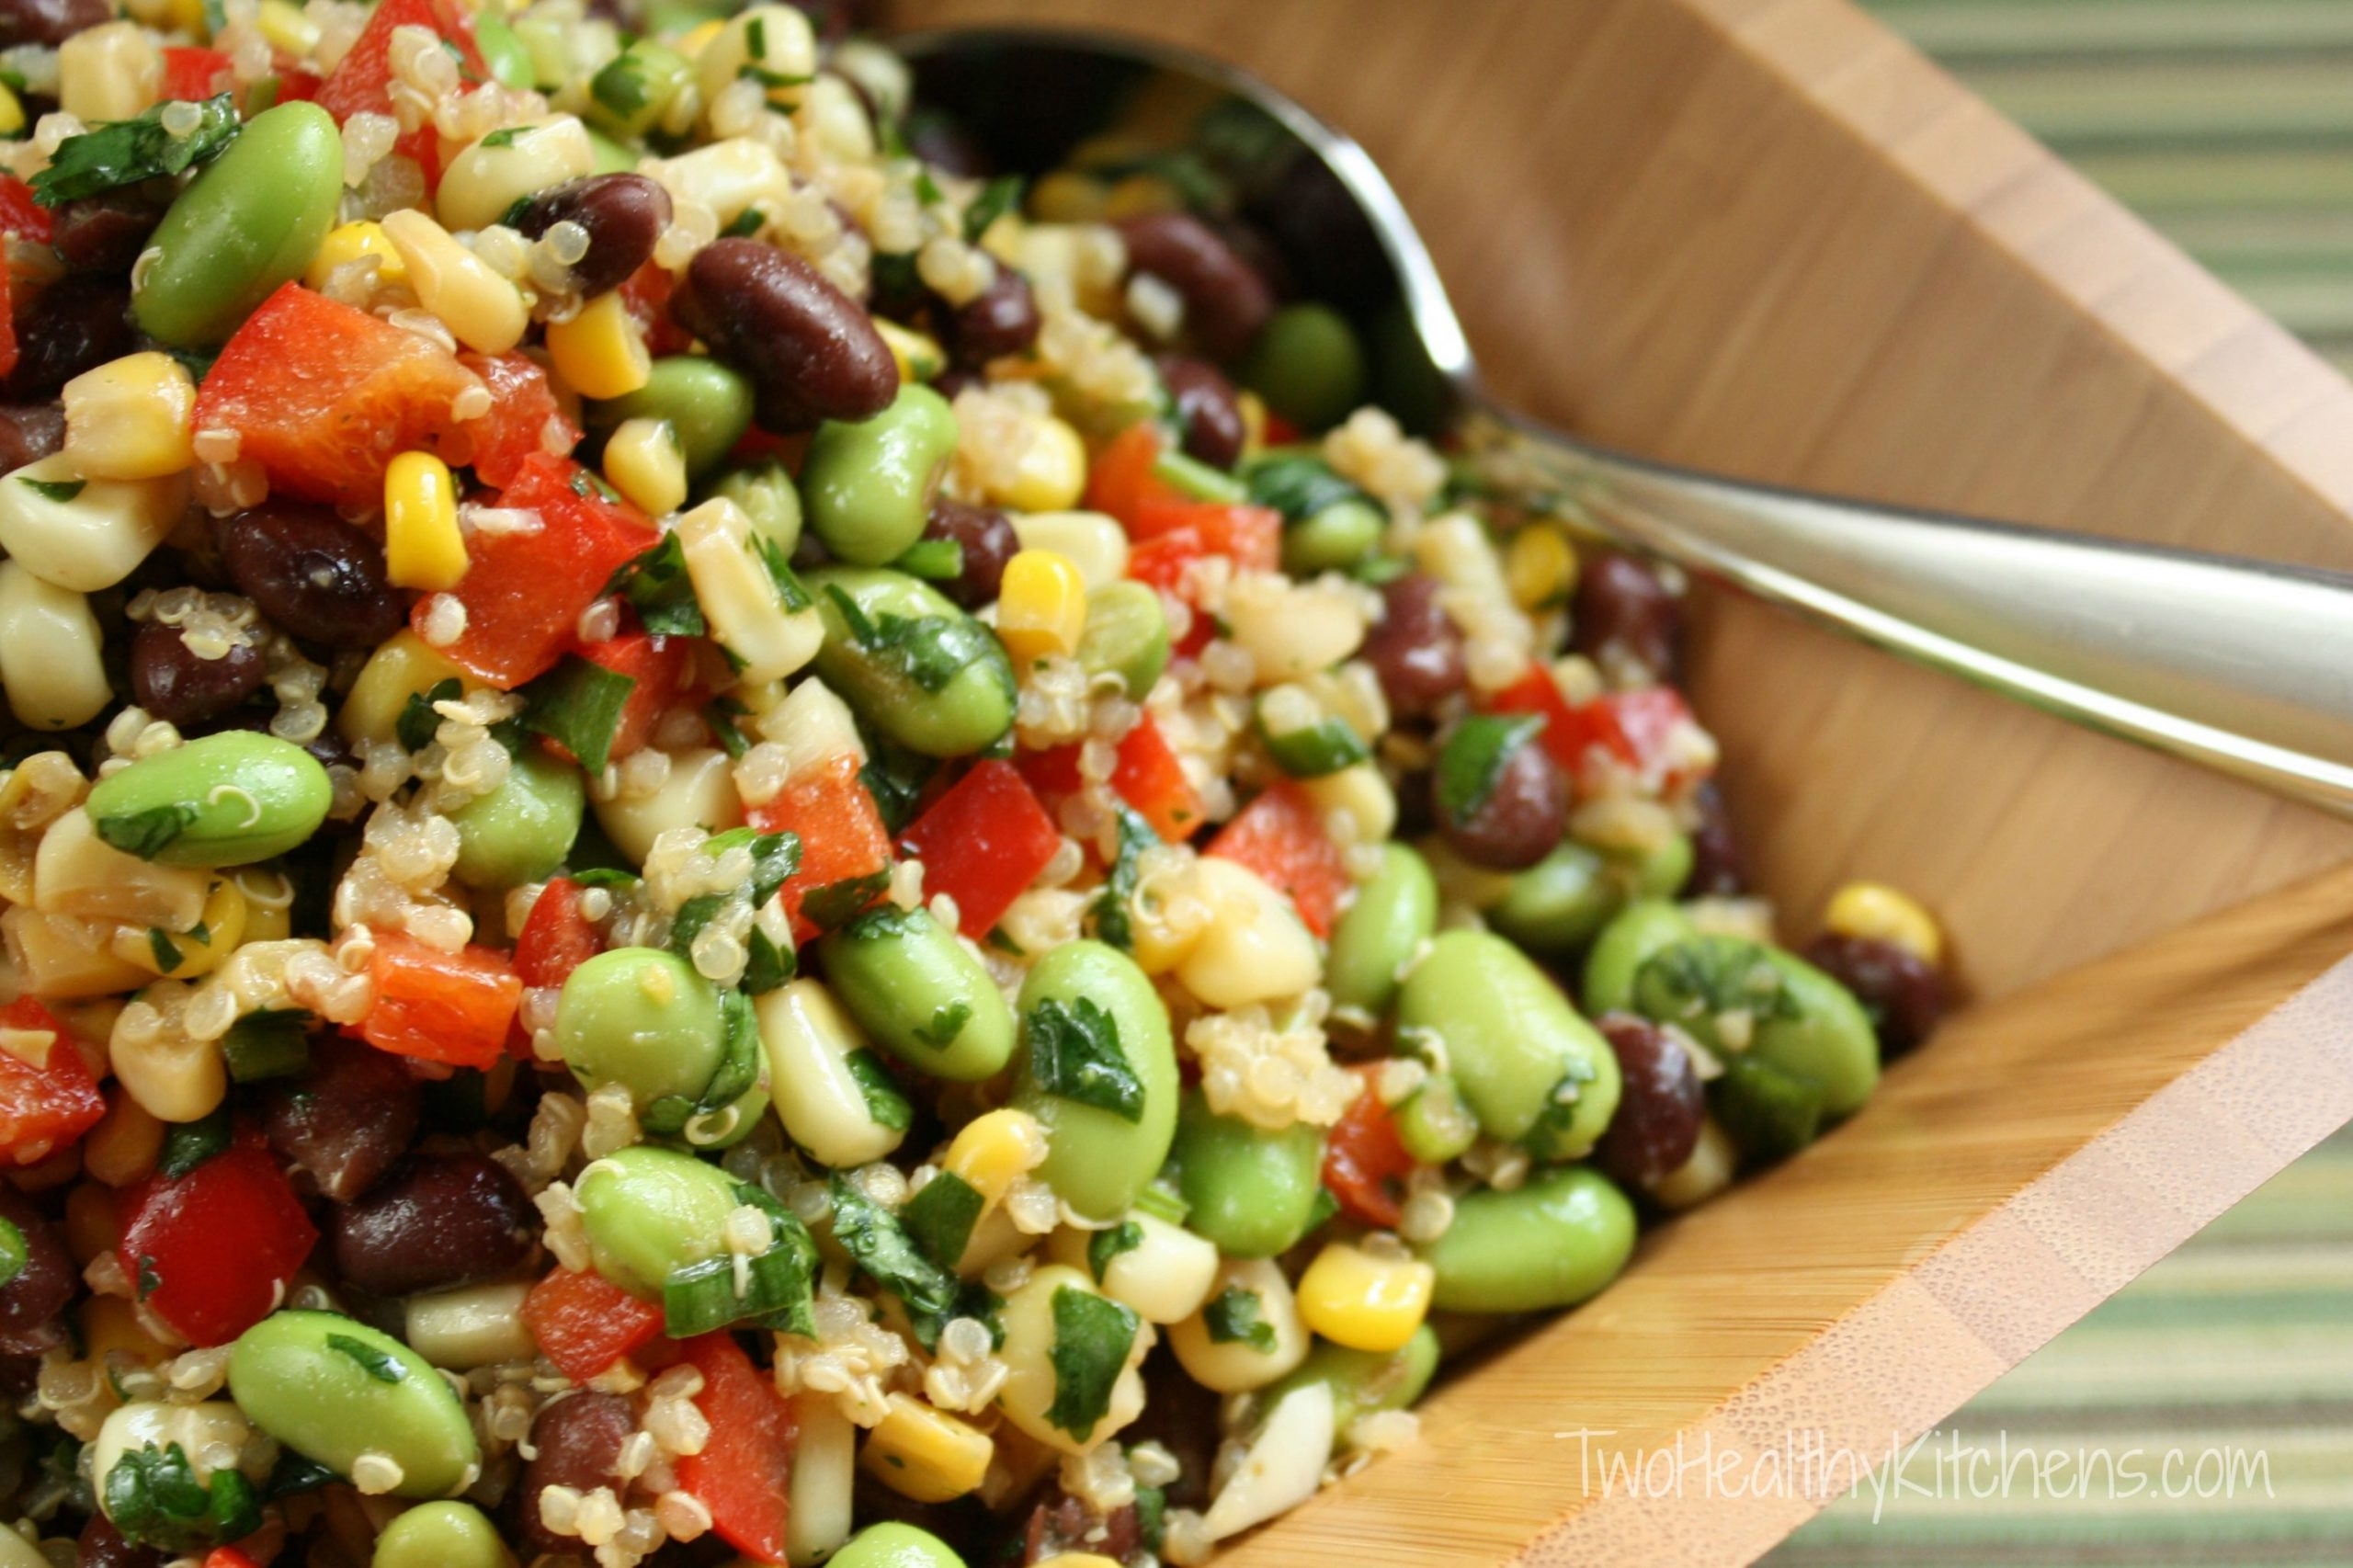 Corn, Edamame and Quinoa Salad Recipe with Lemon-Dijon Vinaigrette ...